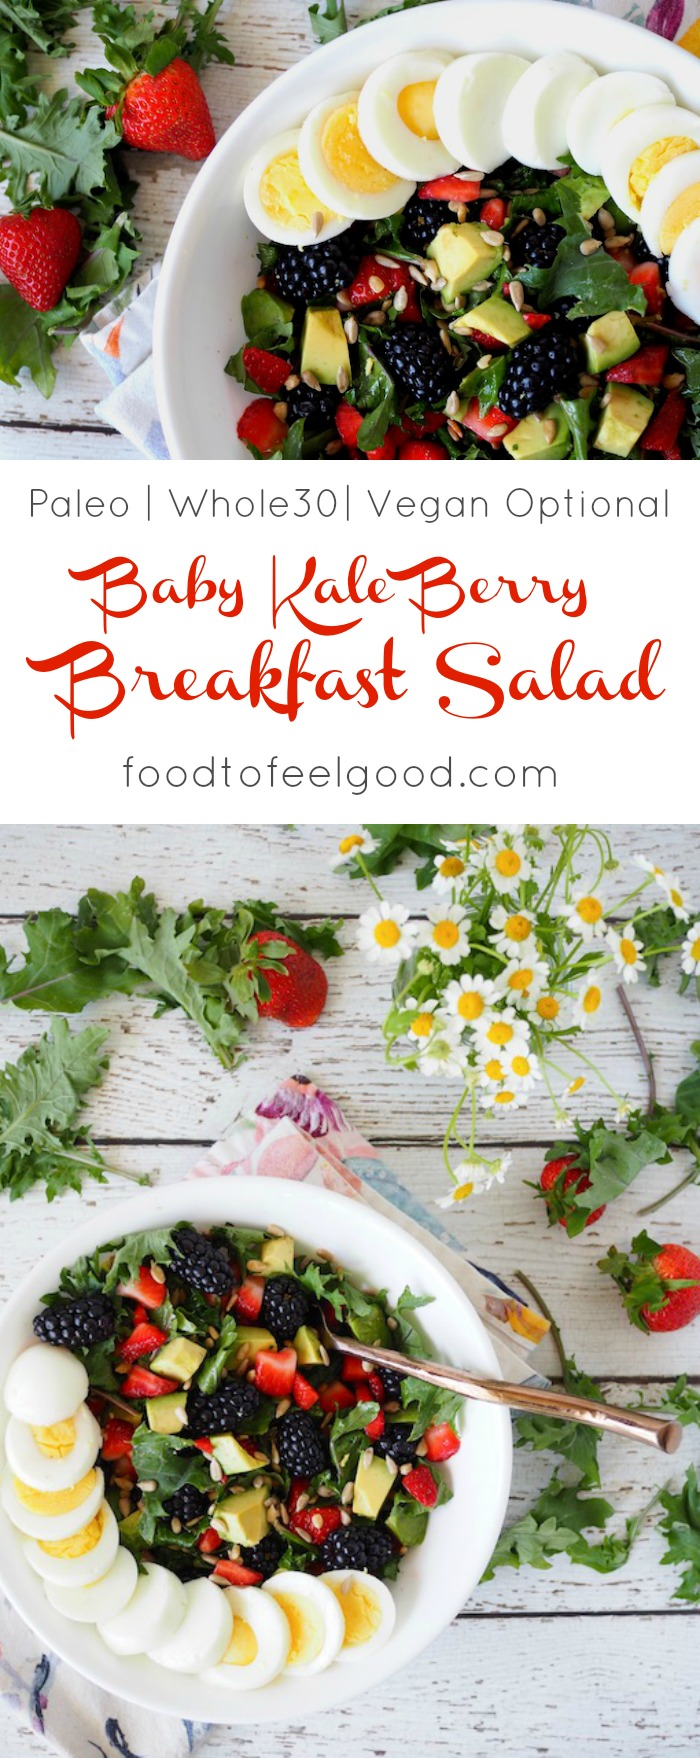 Baby Kale Berry Breakfast Salad | Paleo, Whole30, Vegan Optional | This salad is super yummy, easy to make, and very nutrient dense, full of protein, antioxidants, fiber, and healthy fats. #breakfastsalad #healthybreakfast #paleorecipes #whole30 #salad